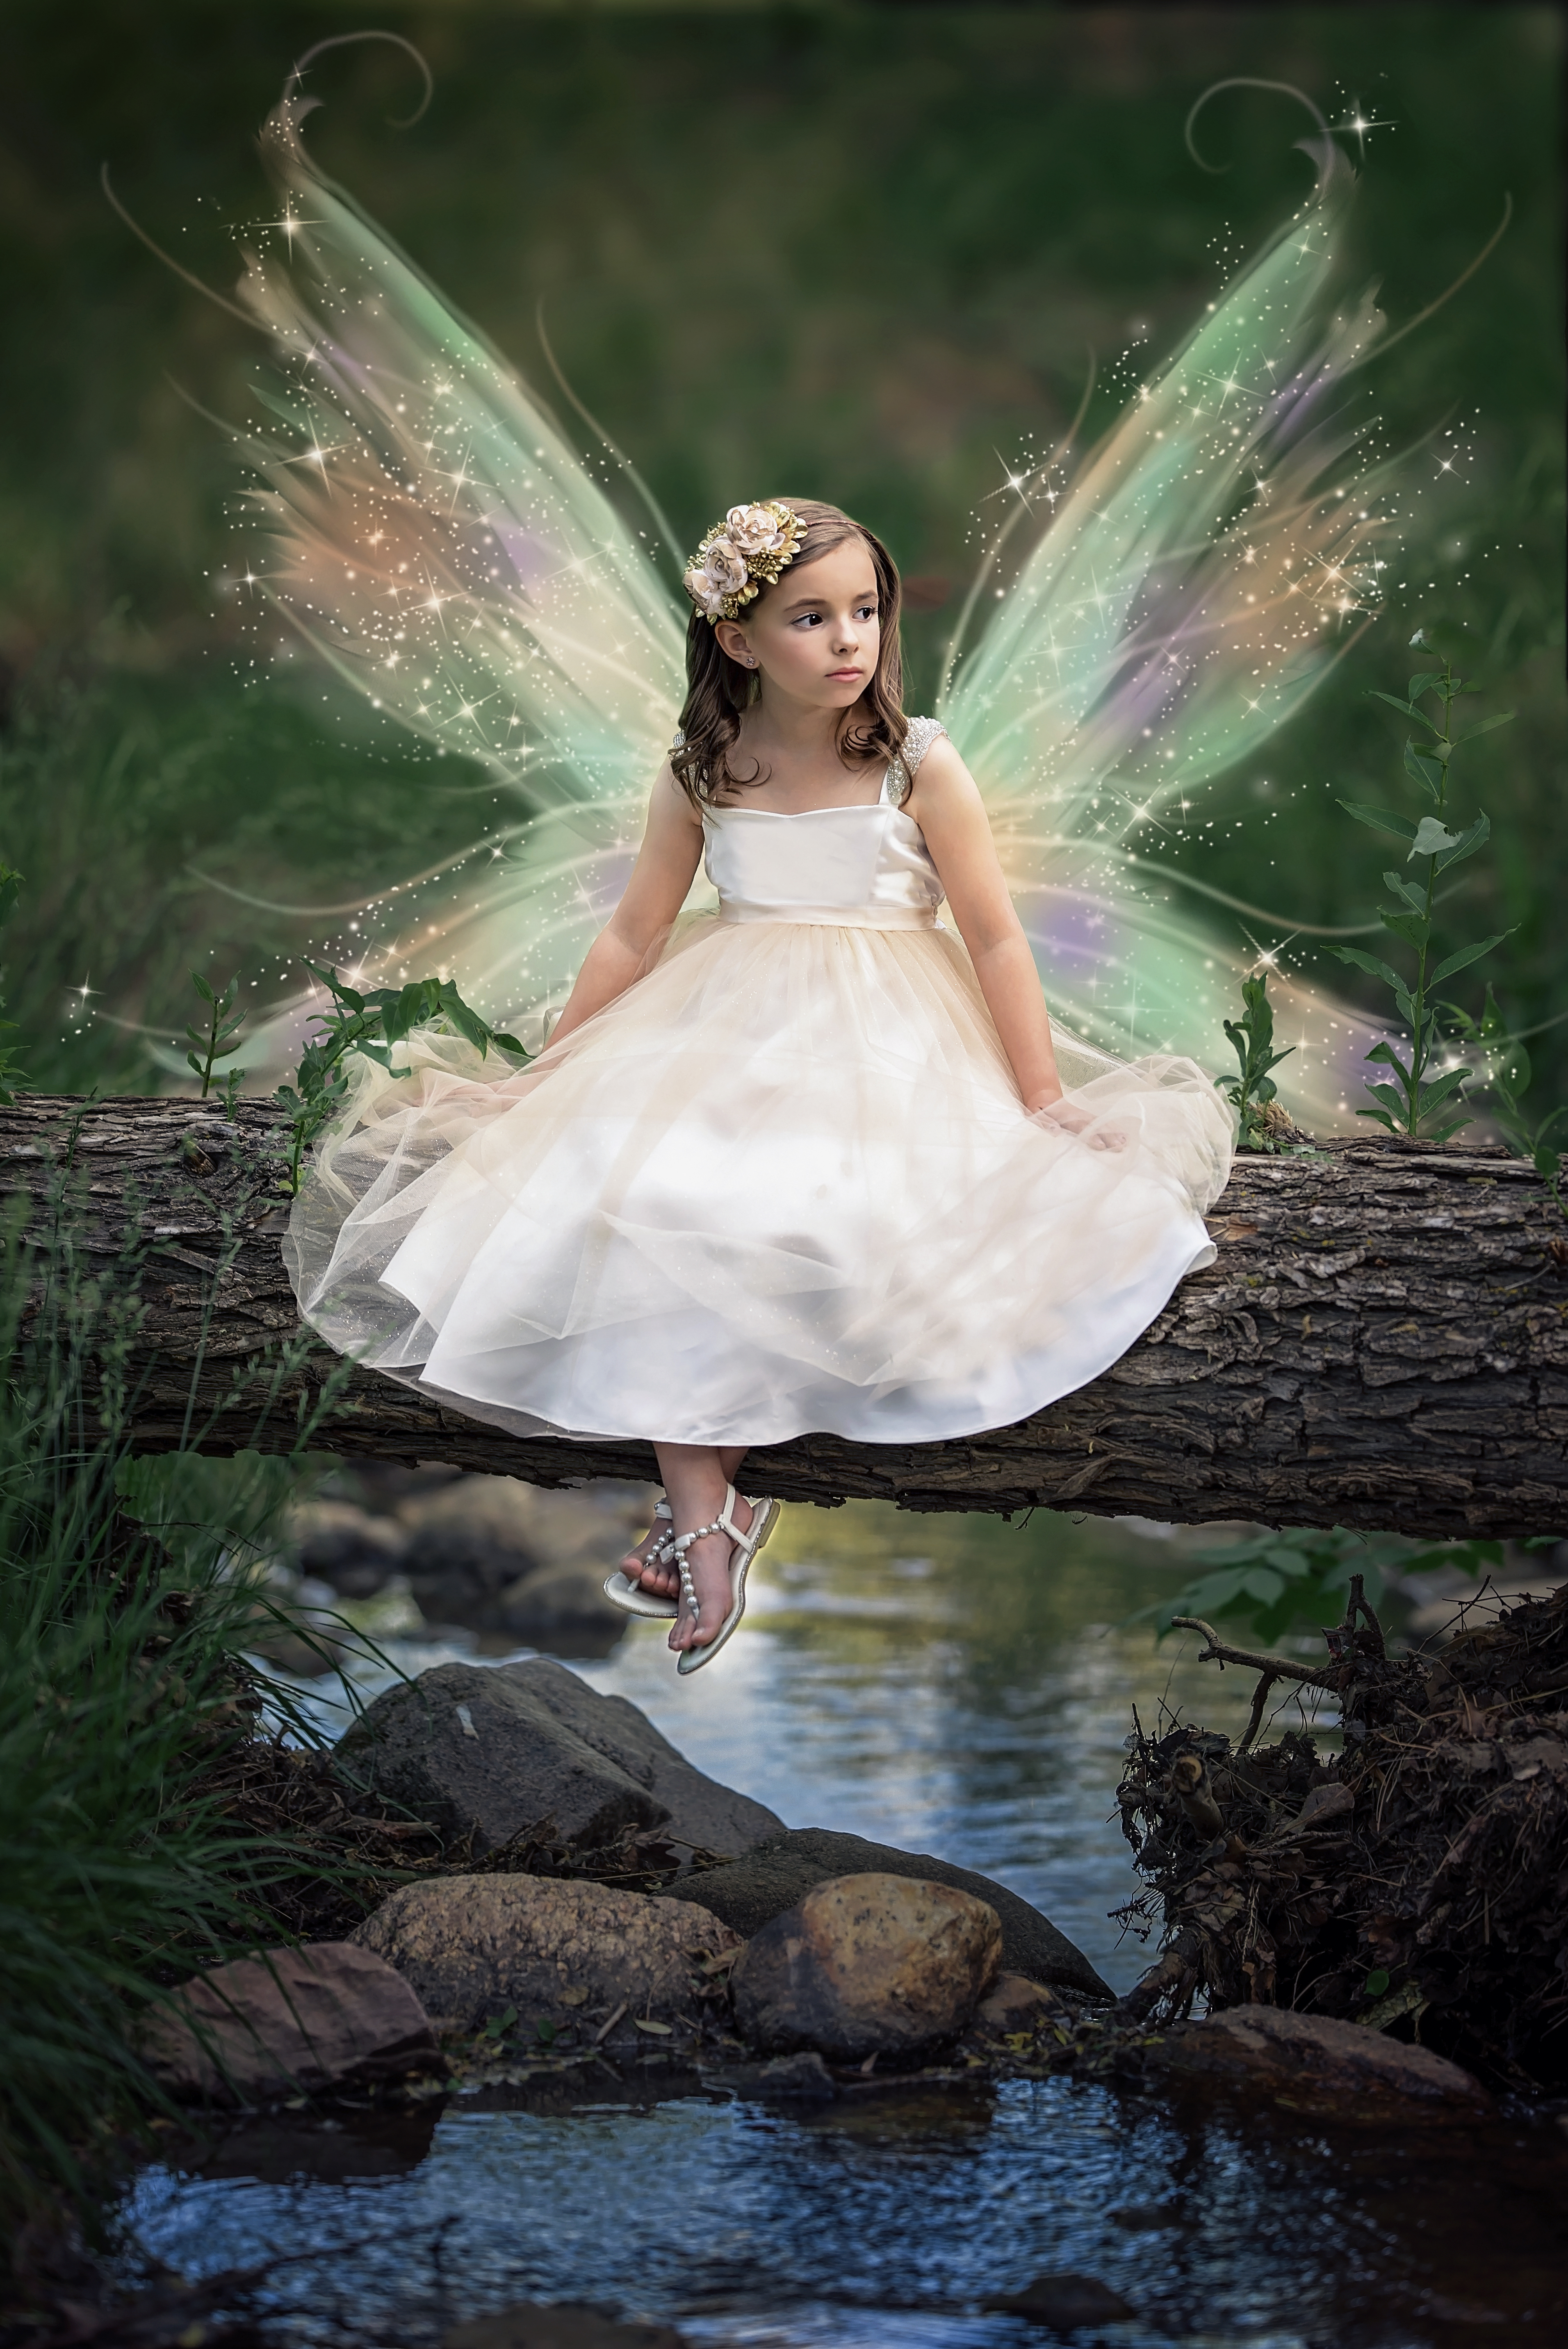 Fairy Wings Imagination